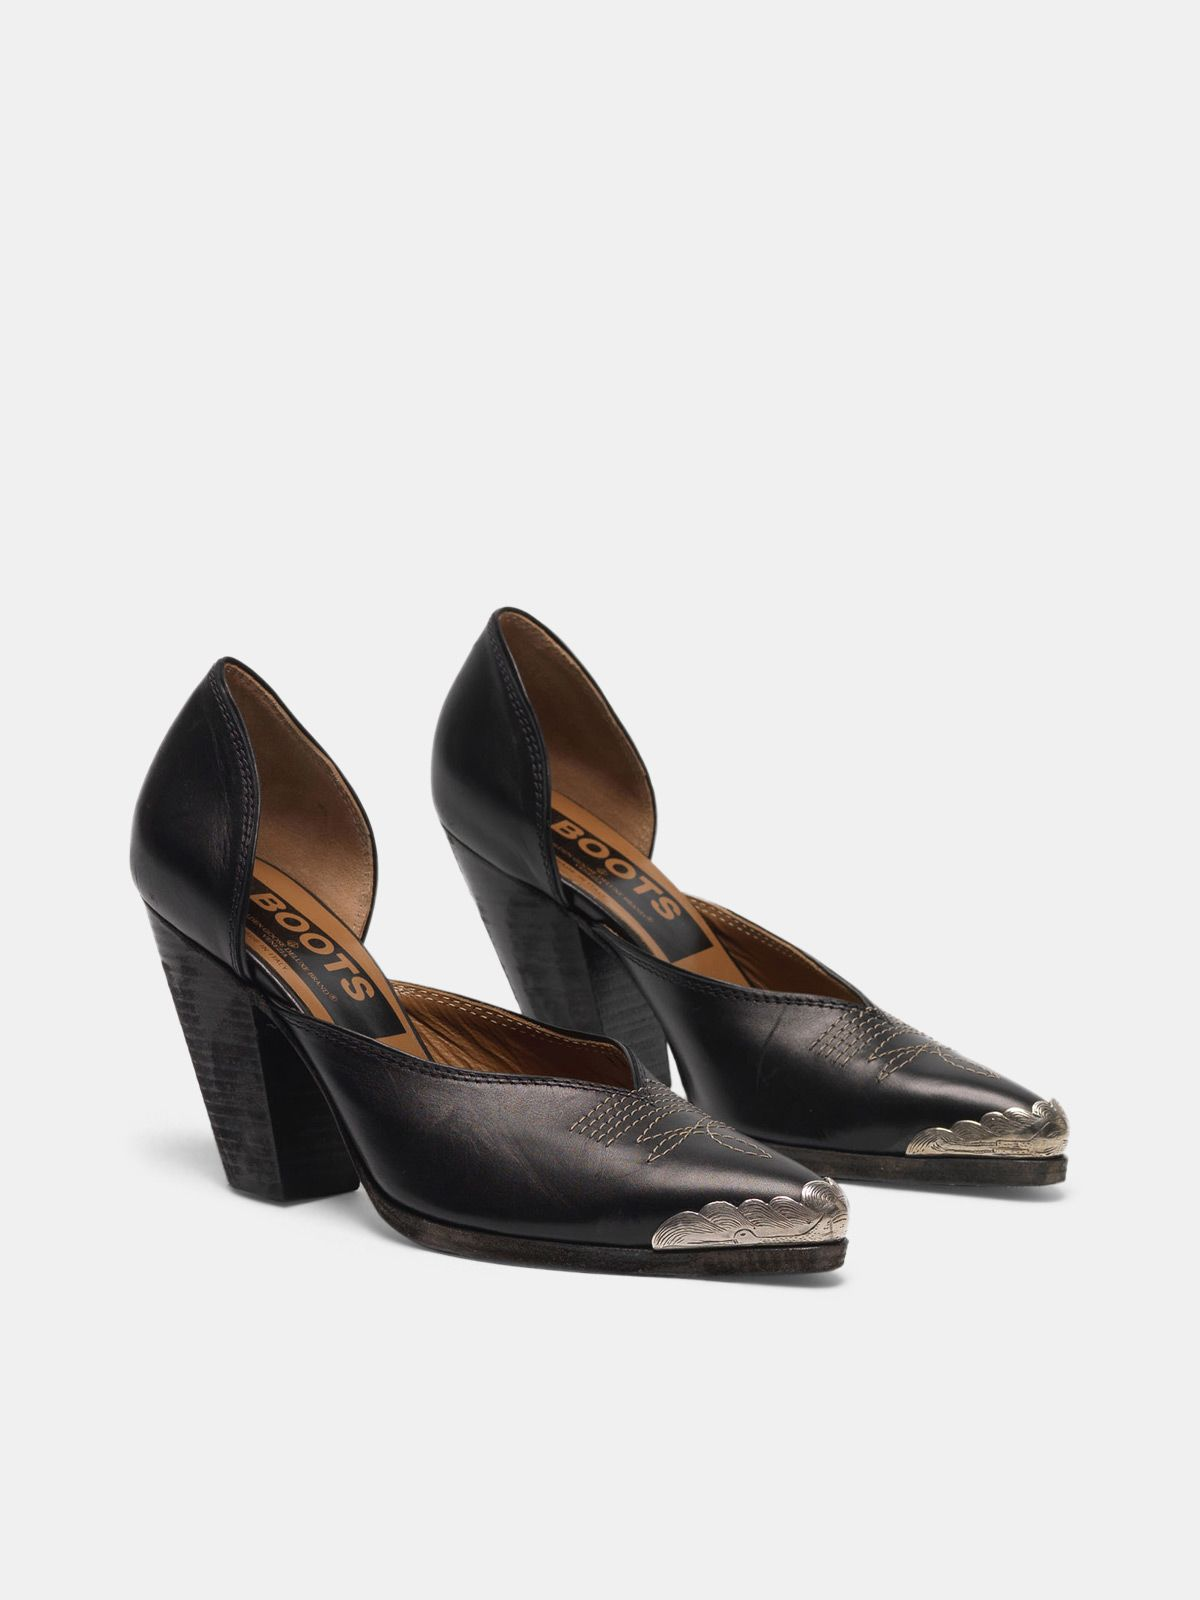 Golden Goose - Marfa pumps made of leather with metal toecap  in